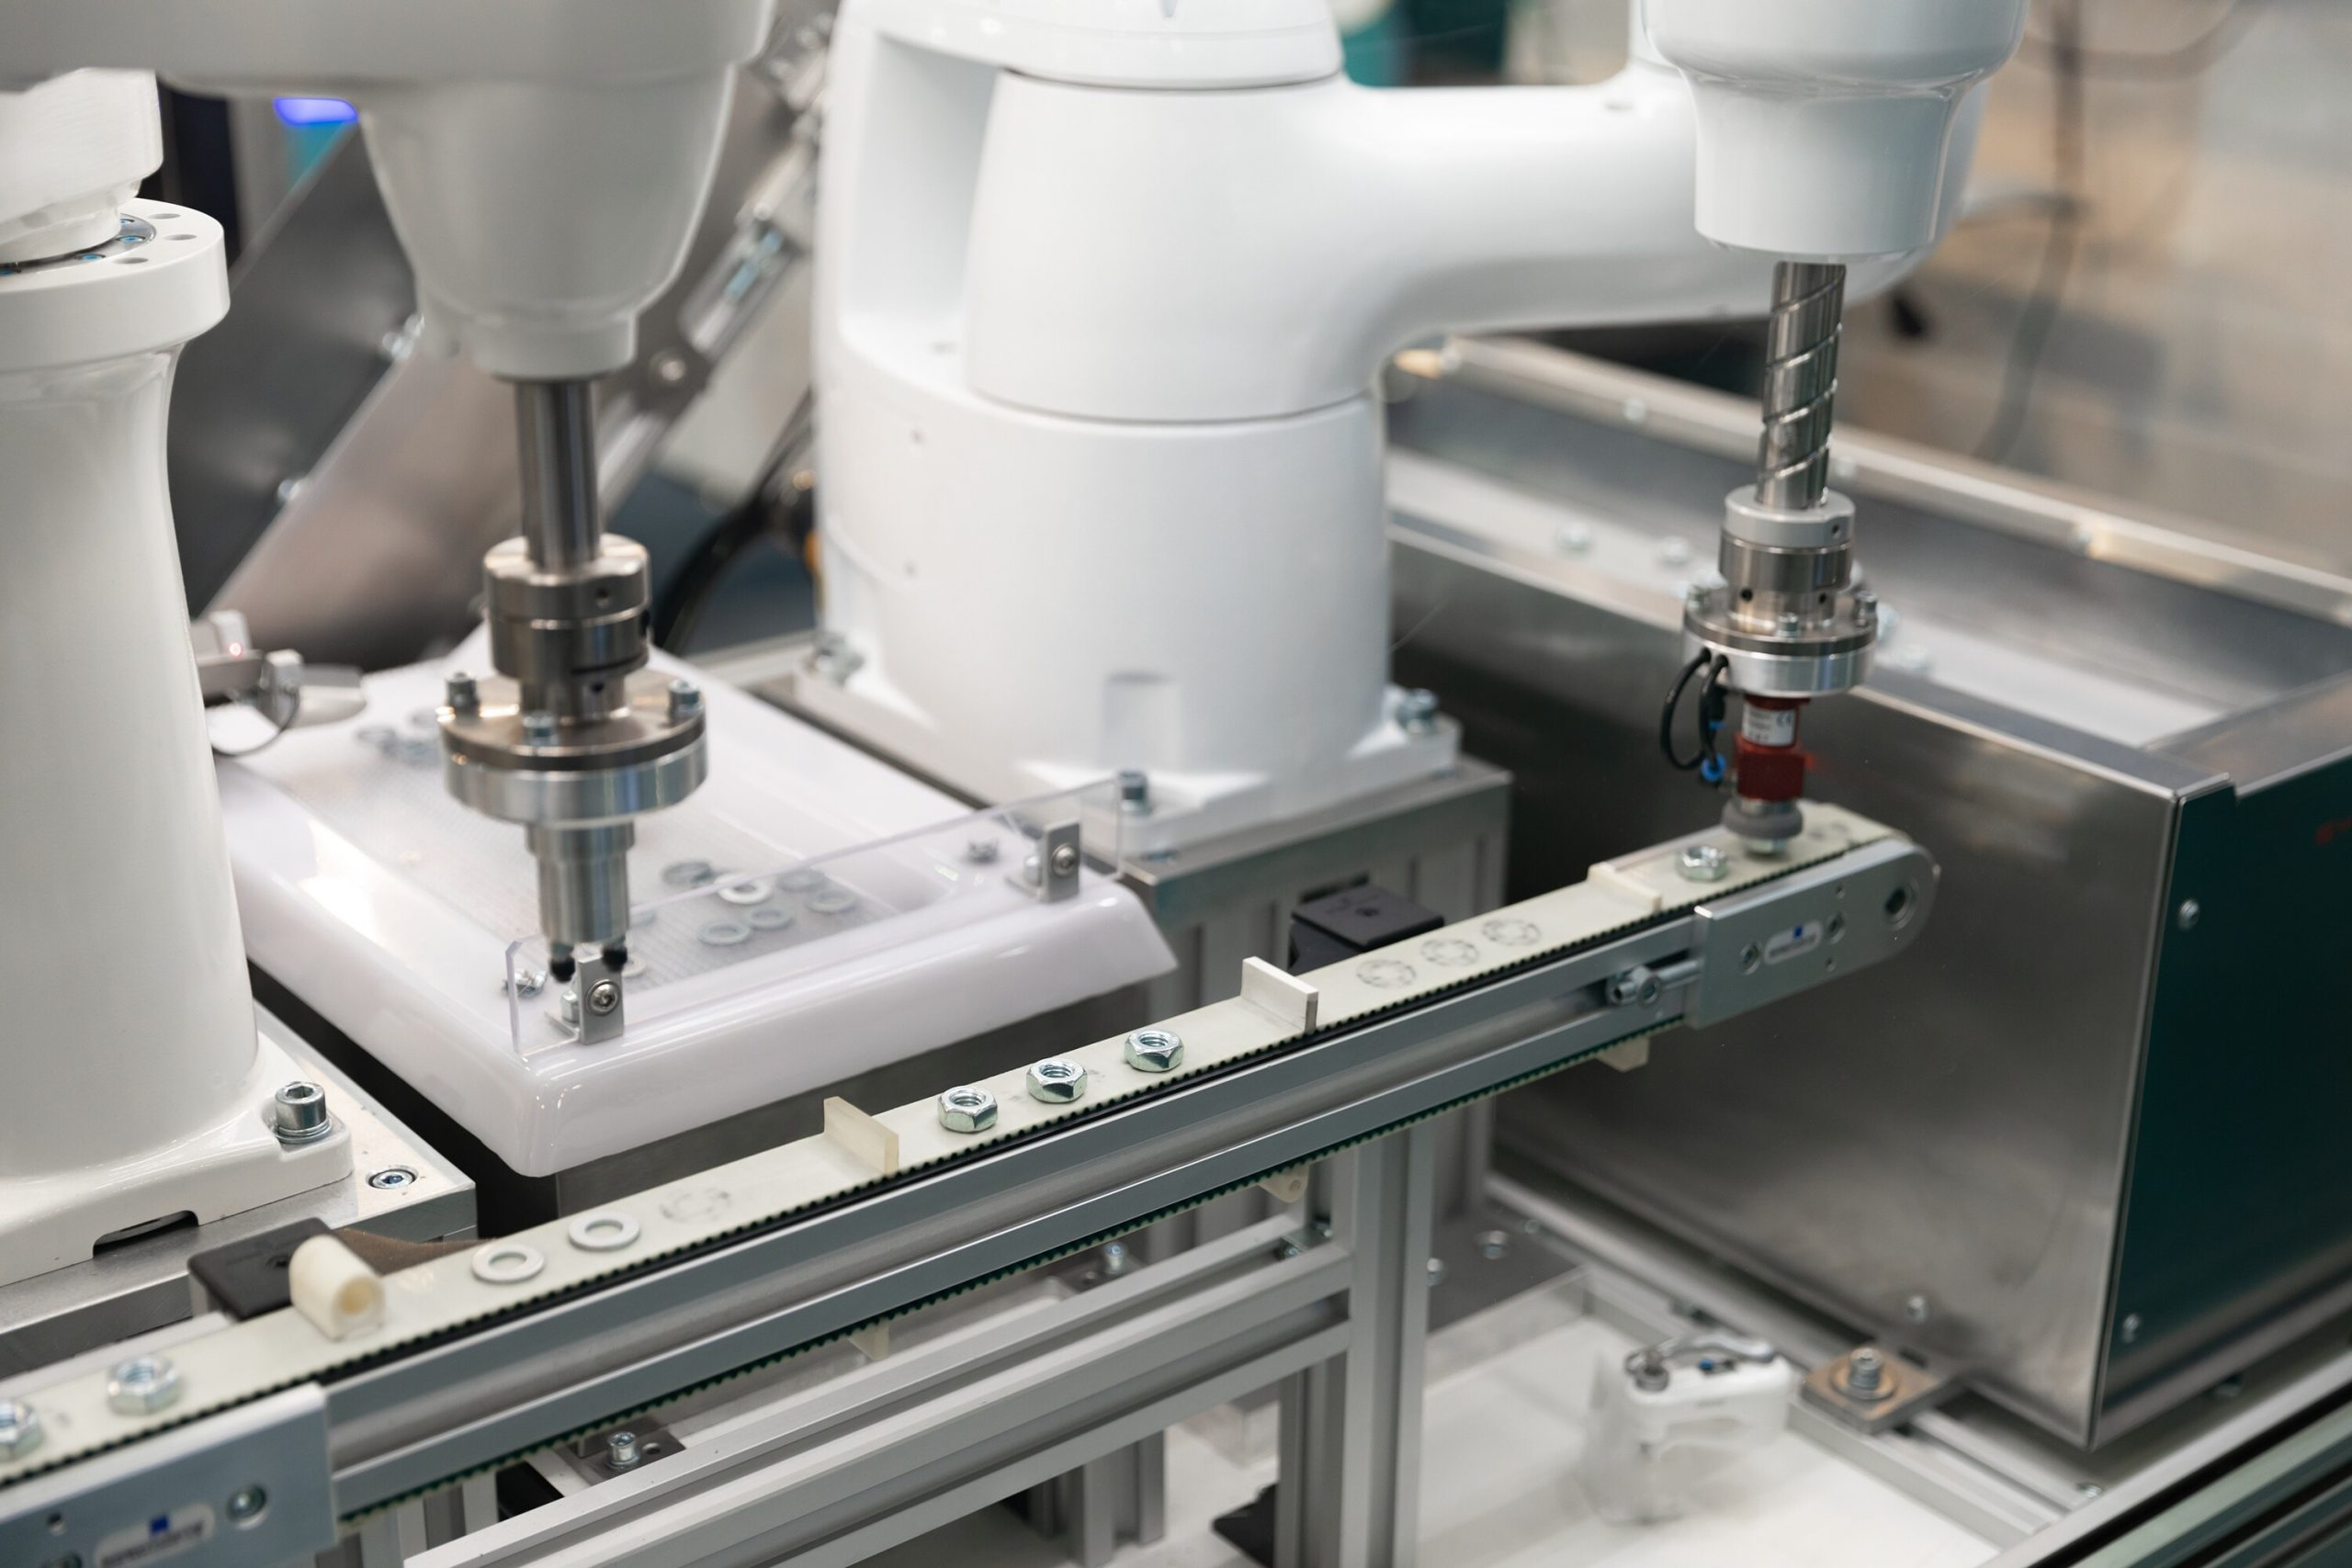 Automatic robot arm working in industrial environment closeup photo